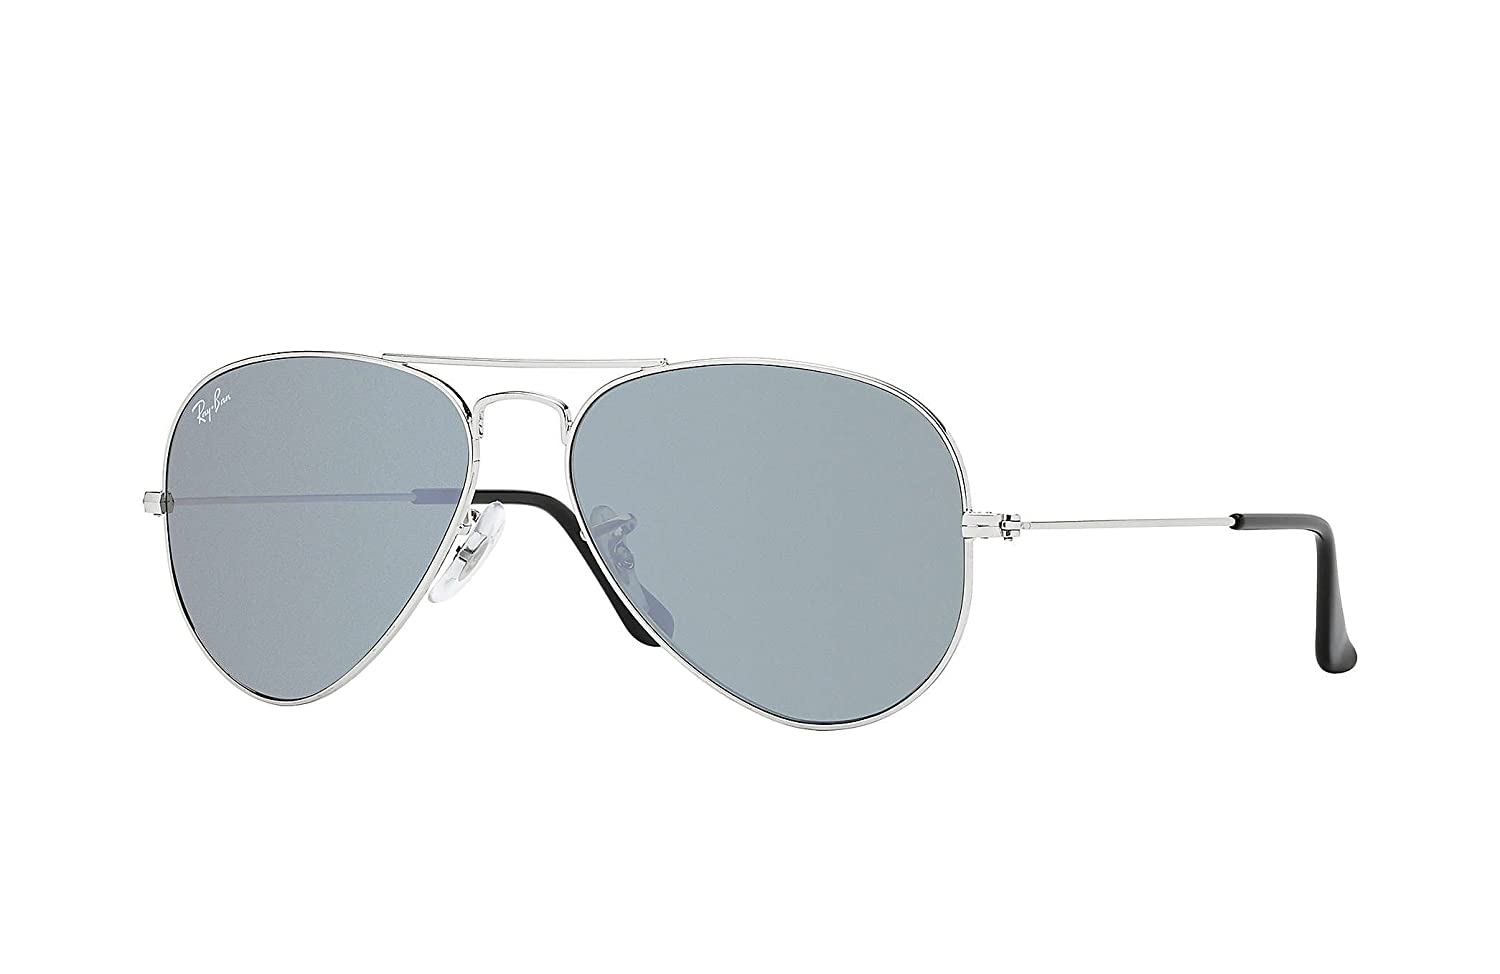 ef147cfb53 Amazon.com  Ray-Ban RB3025 Small Aviator Sunglasses Shiny Silver w Silver  Mirror (W3275) 3025 55mm Authentic  Clothing